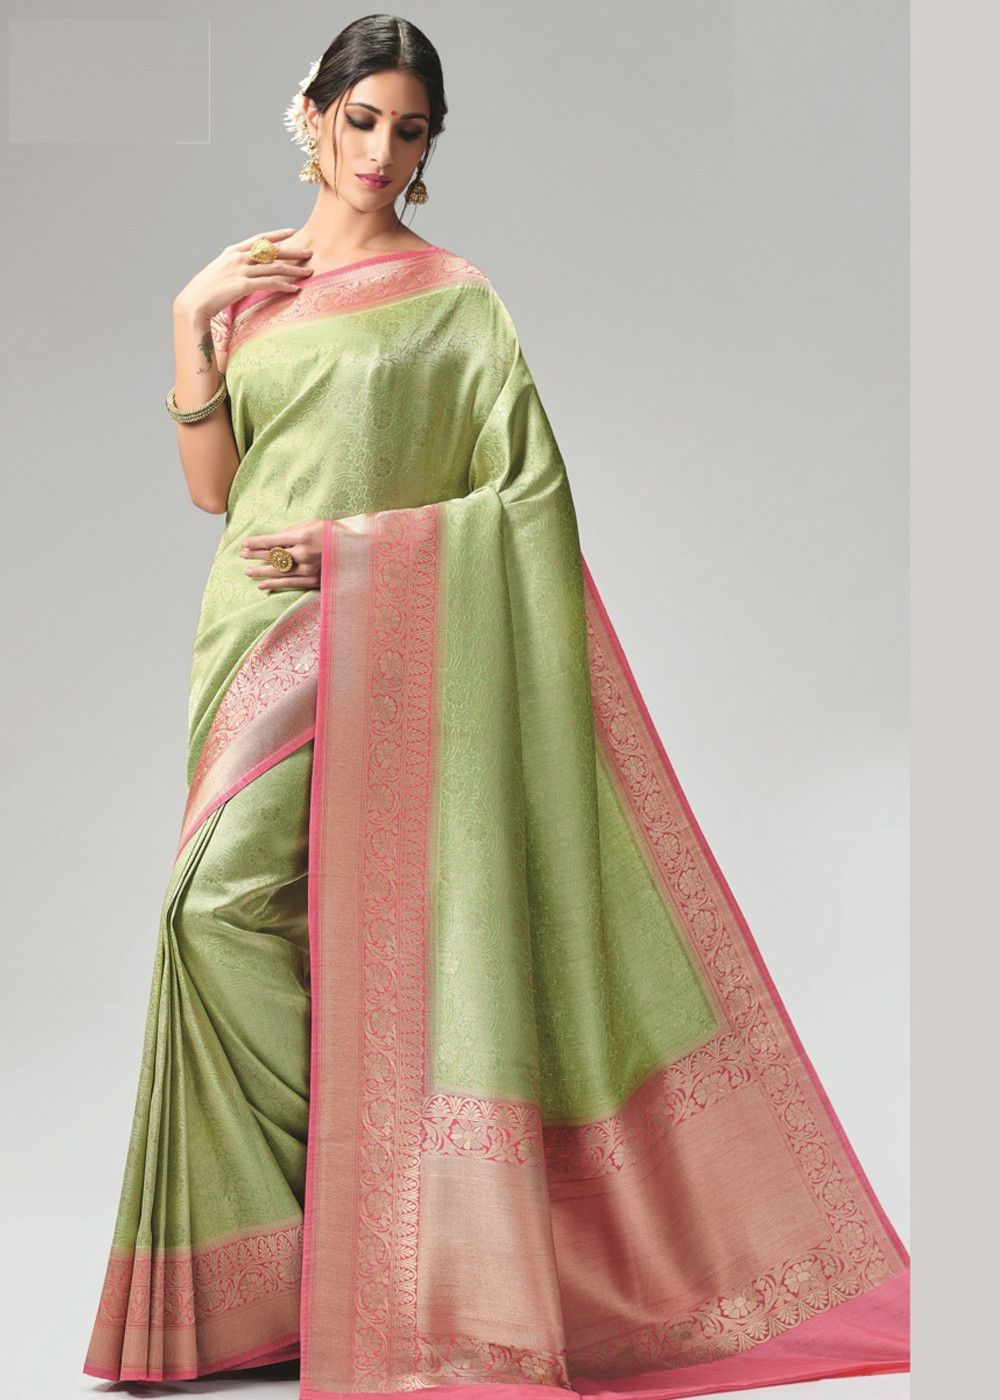 6e86c320f5 Light green art #silk #saree in all over woven work, pink border and  distinctive pallu design. Accompanied by a pink blouse piece in art silk as  well.